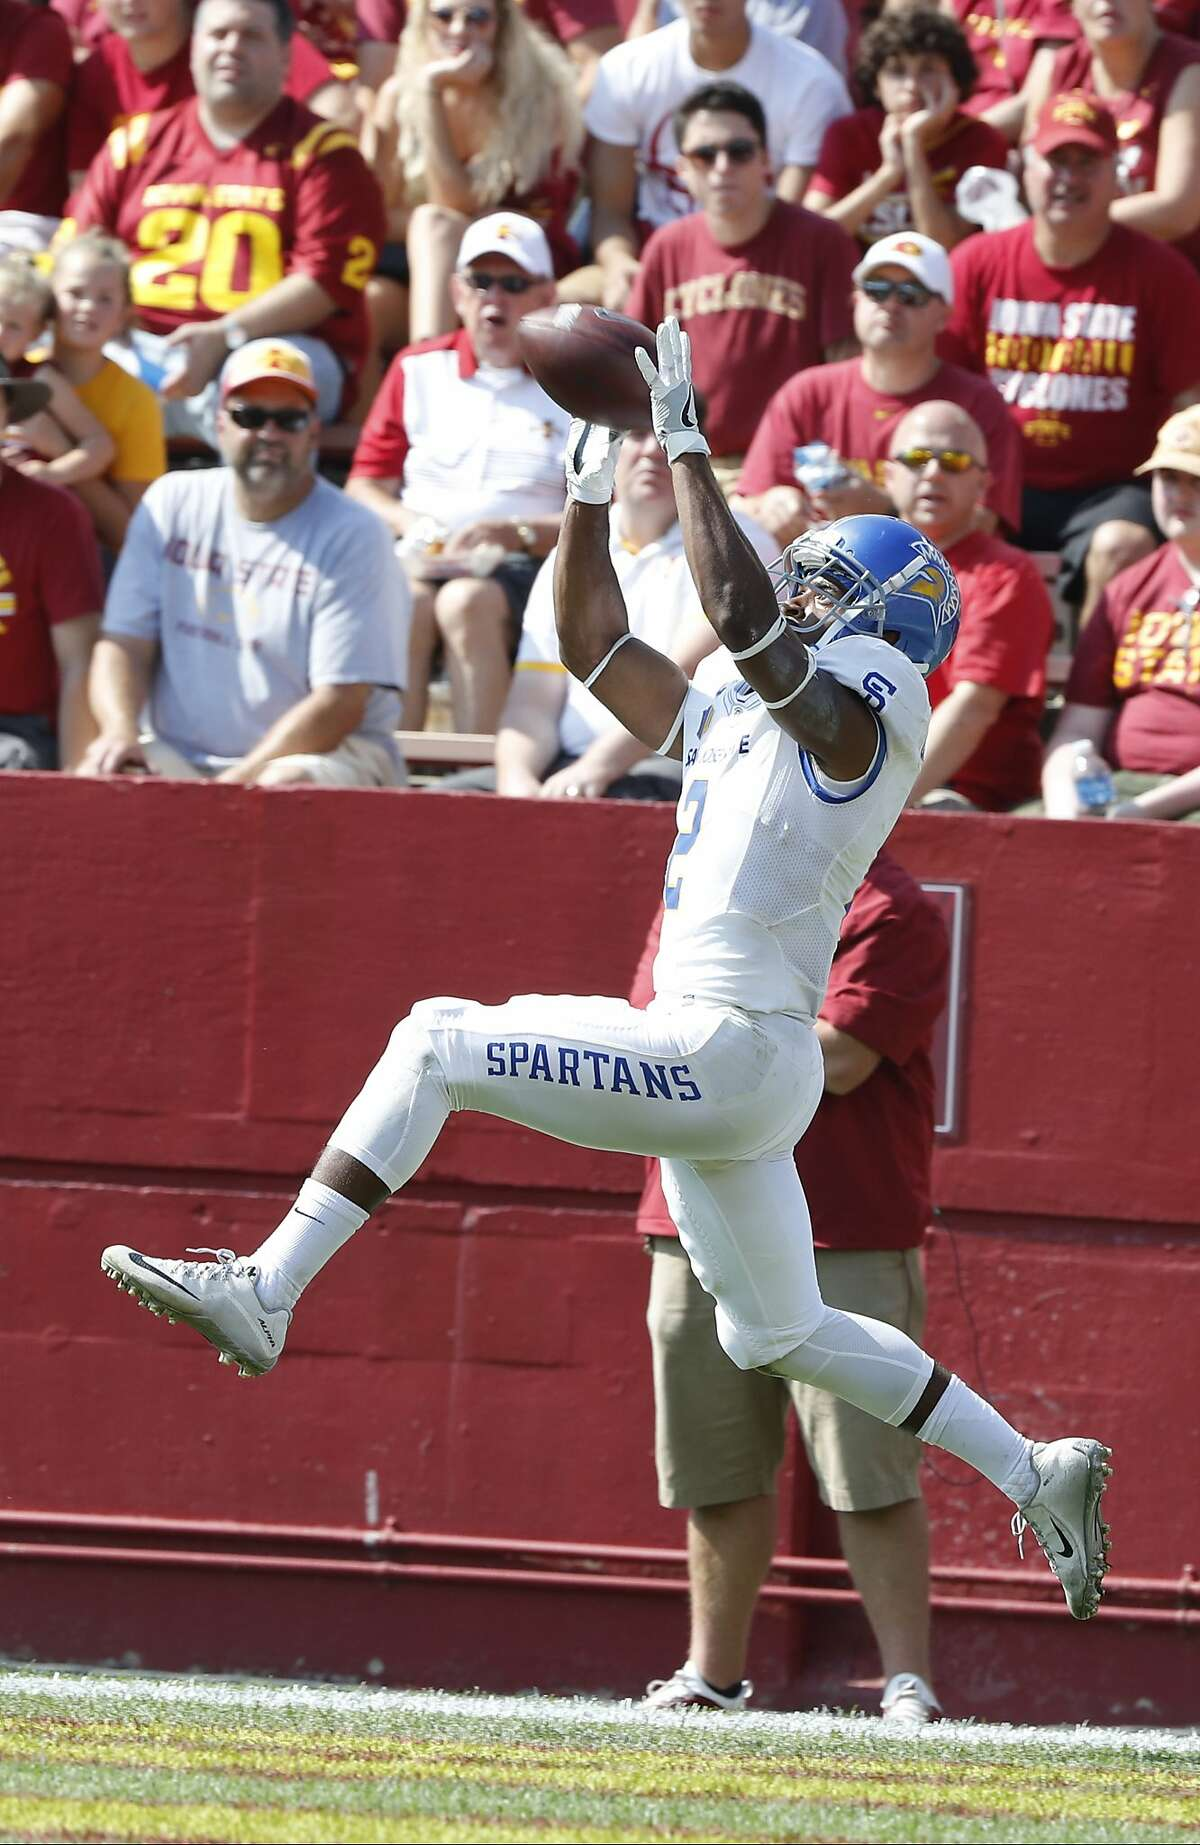 AMES, IA � SEPTEMBER 24: Wide receiver Tim Crawley #2 of the San Jose State Spartans pulls in a touchdown pass in the second half of play against the Iowa State Cyclones at Jack Trice Stadium on September 24, 2016 in Ames, Iowa. The Iowa State Cyclones won 44-10 over the San Jose State Spartans.(Photo by David Purdy/Getty Images)